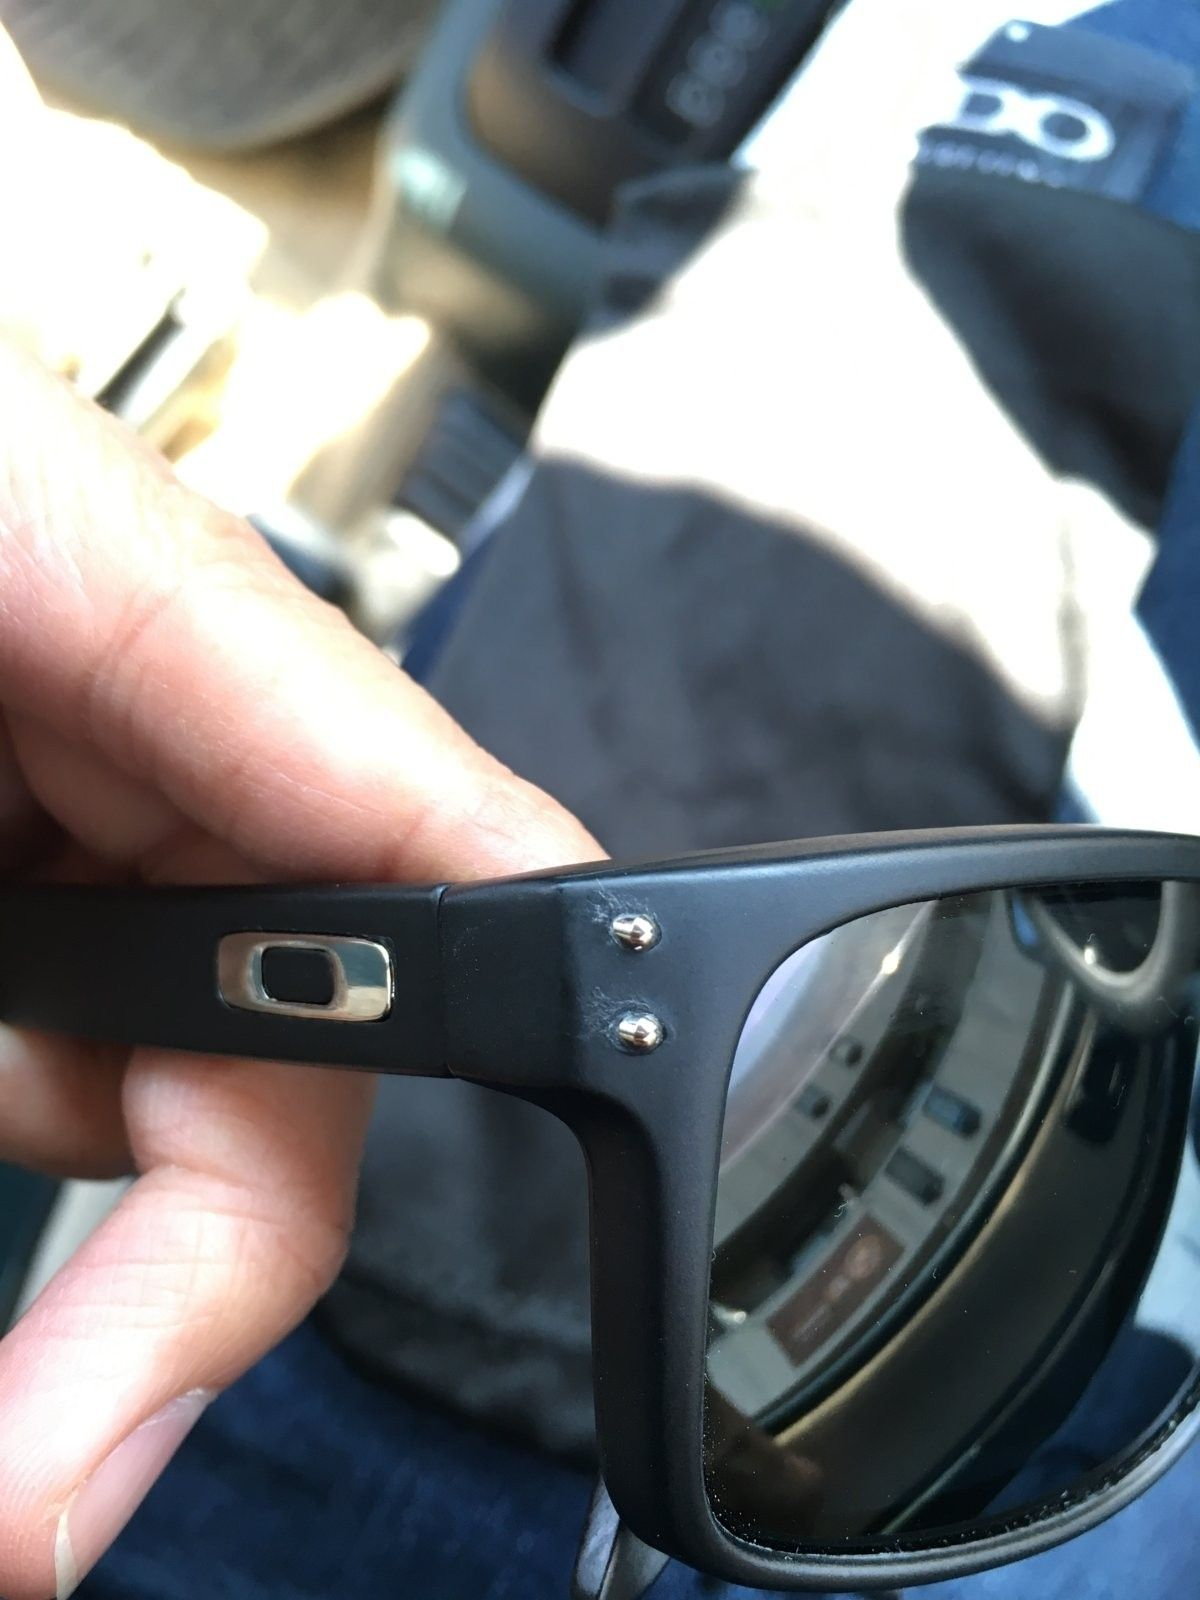 Oakley Holbrook, need help on an issue - image.jpeg